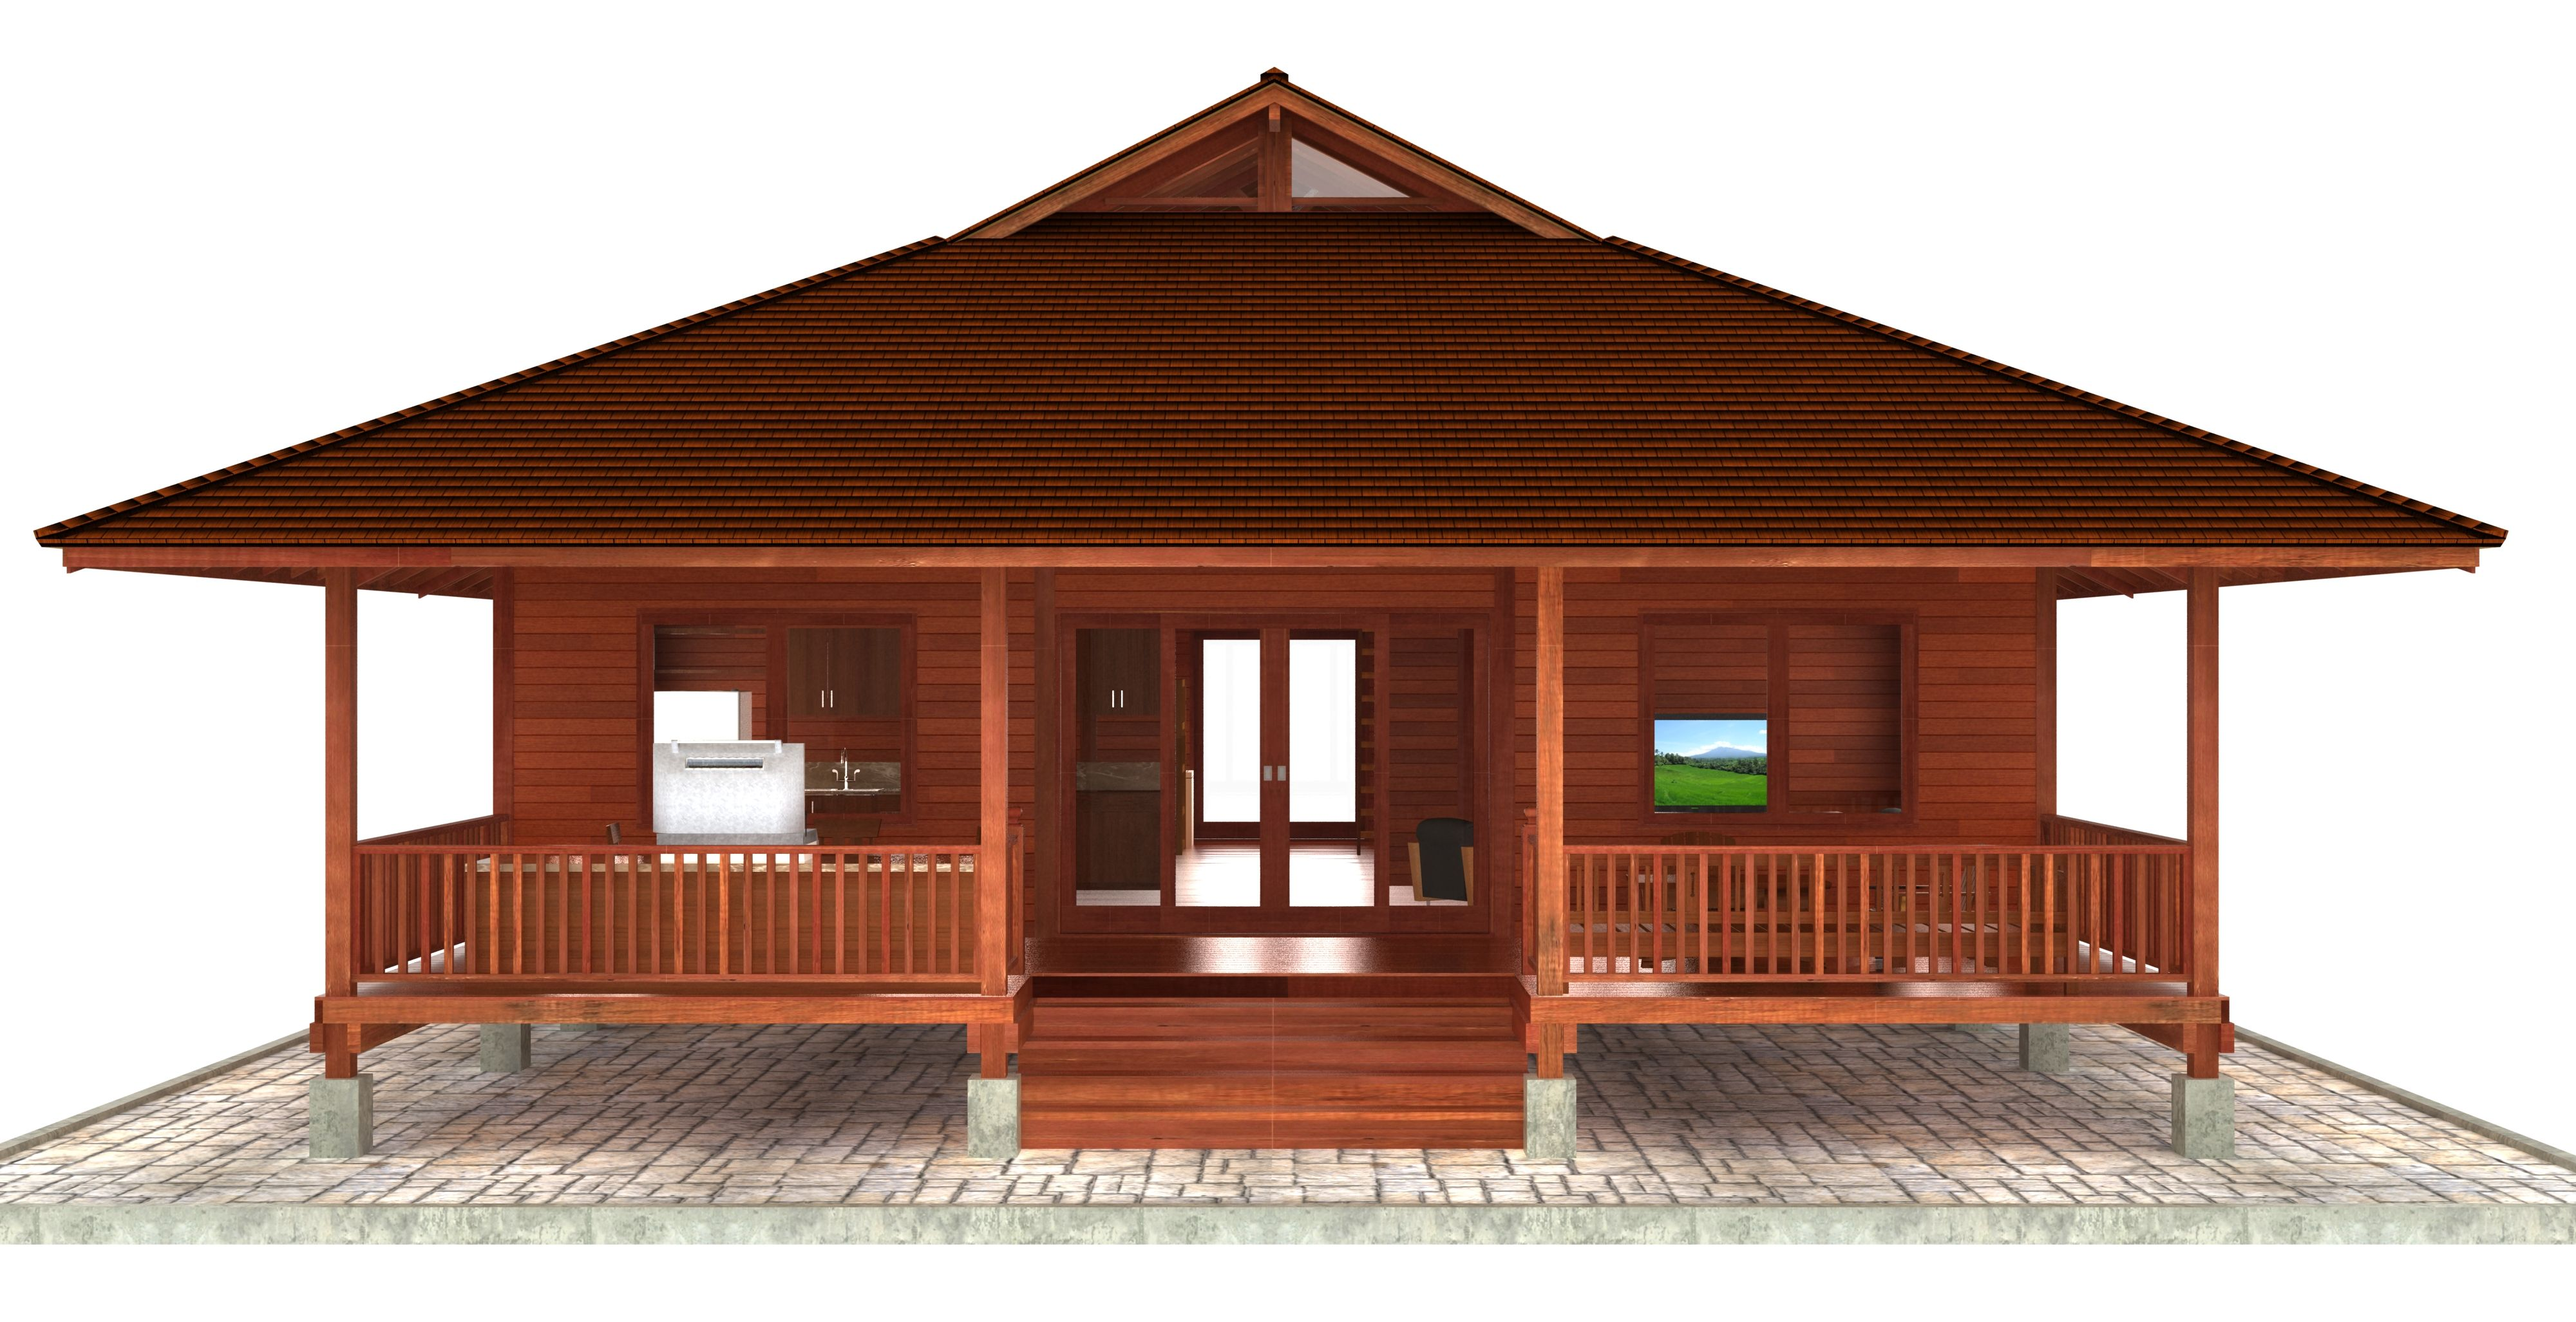 c04ab6f23d0452088af52b31fe0ca95b - 39+ Small Bamboo House Design And Floor Plan PNG